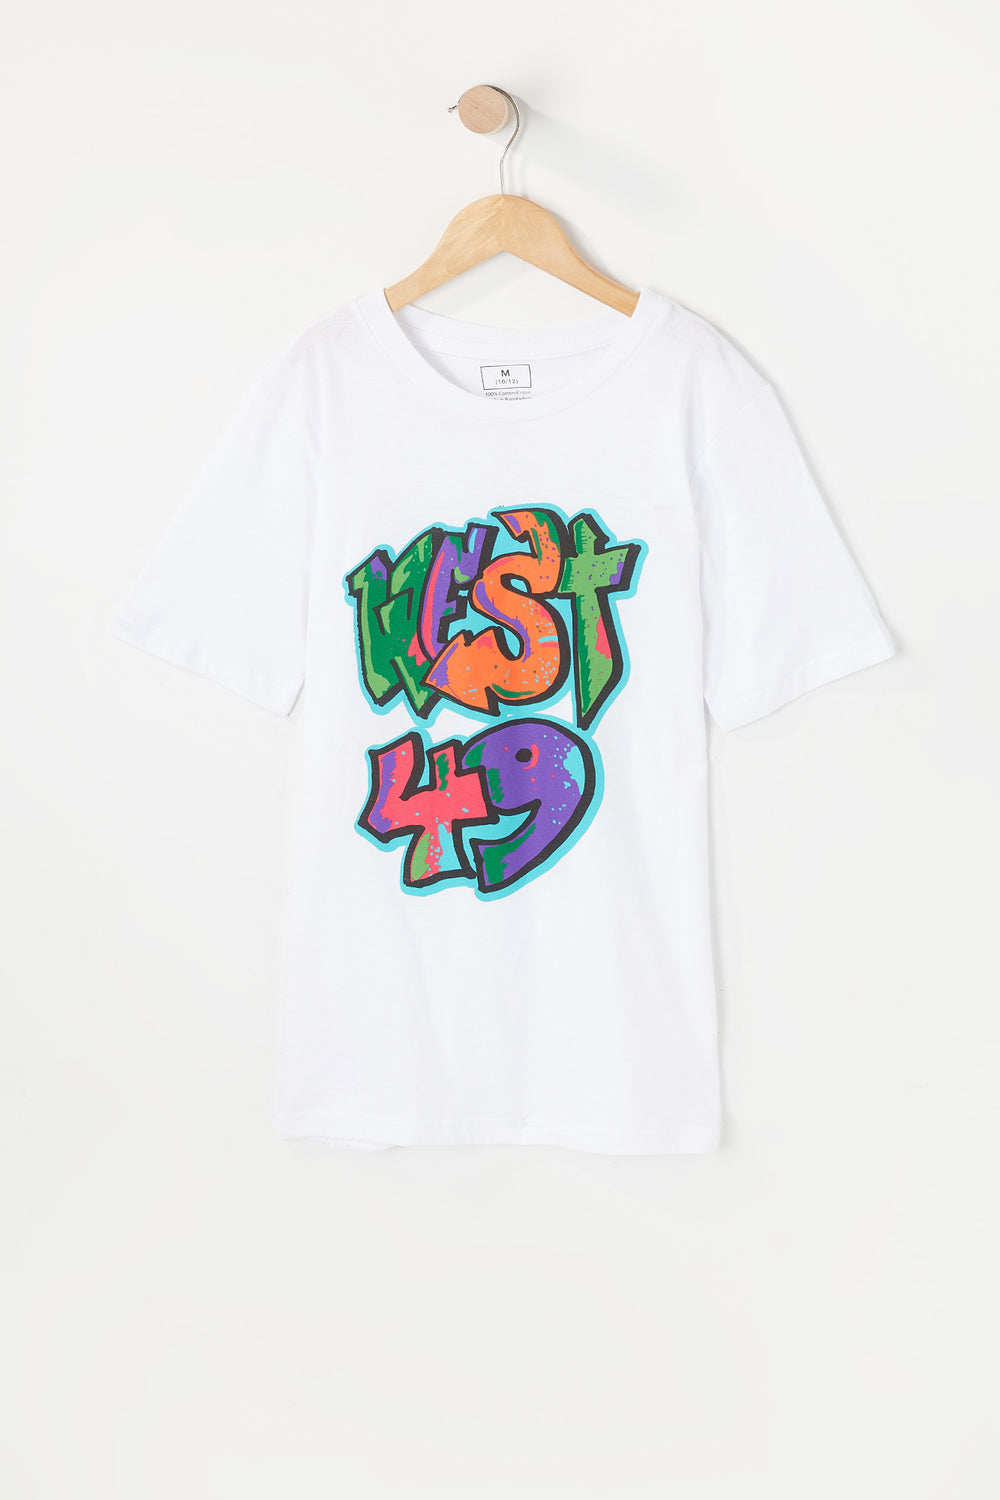 West49 Youth Graffiti T-Shirt White